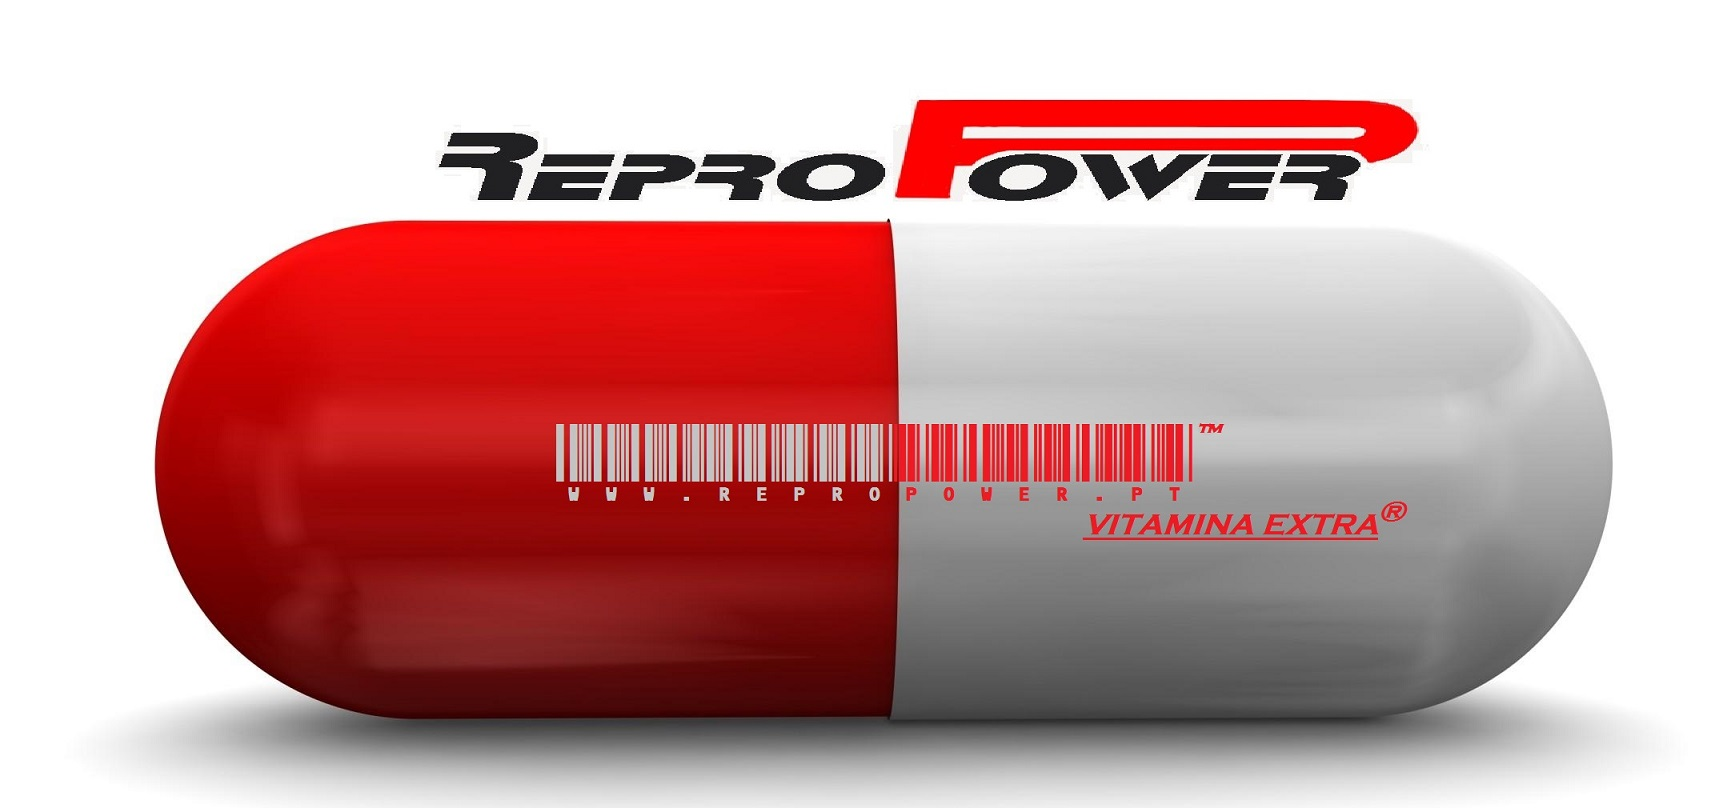 vitamina repropower